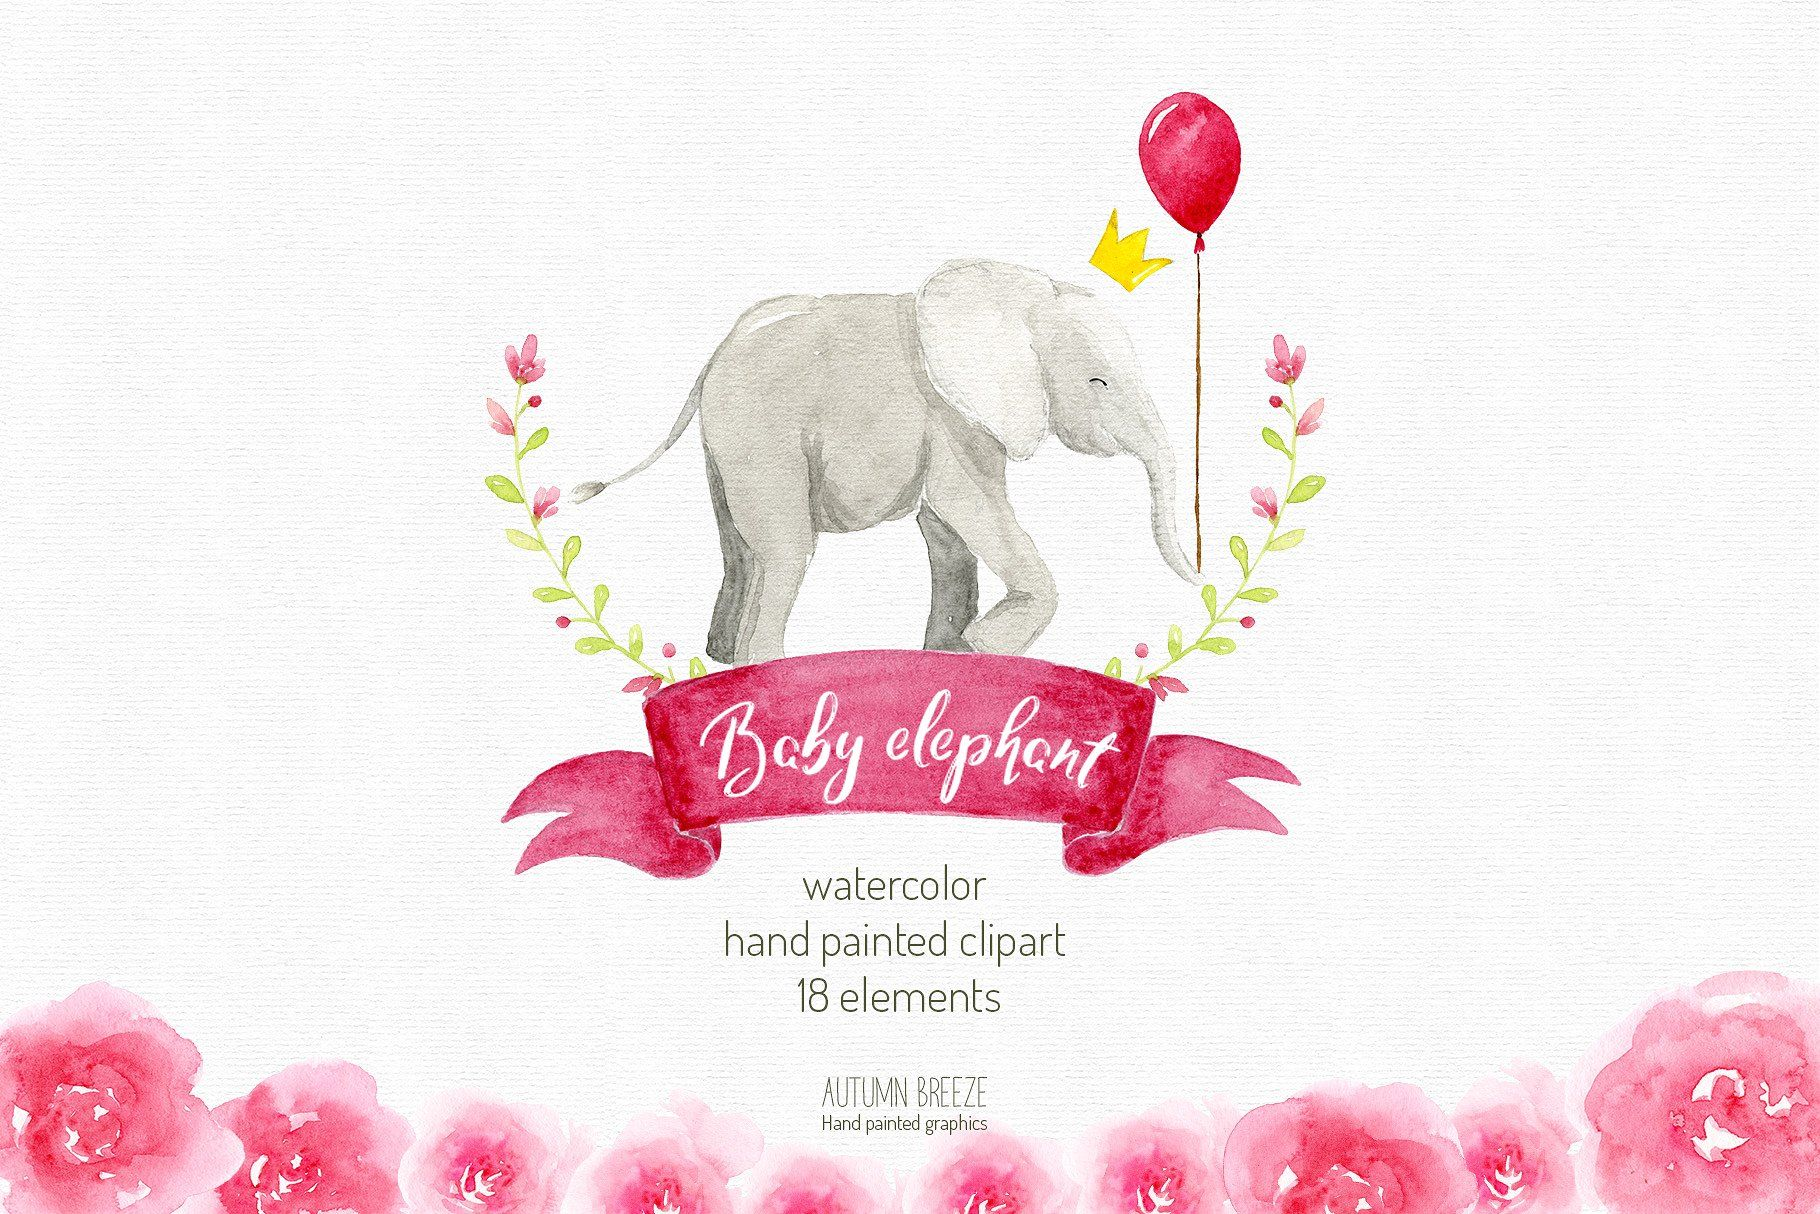 watercolor baby elephant clipart transparentimagessaved 1820x1214